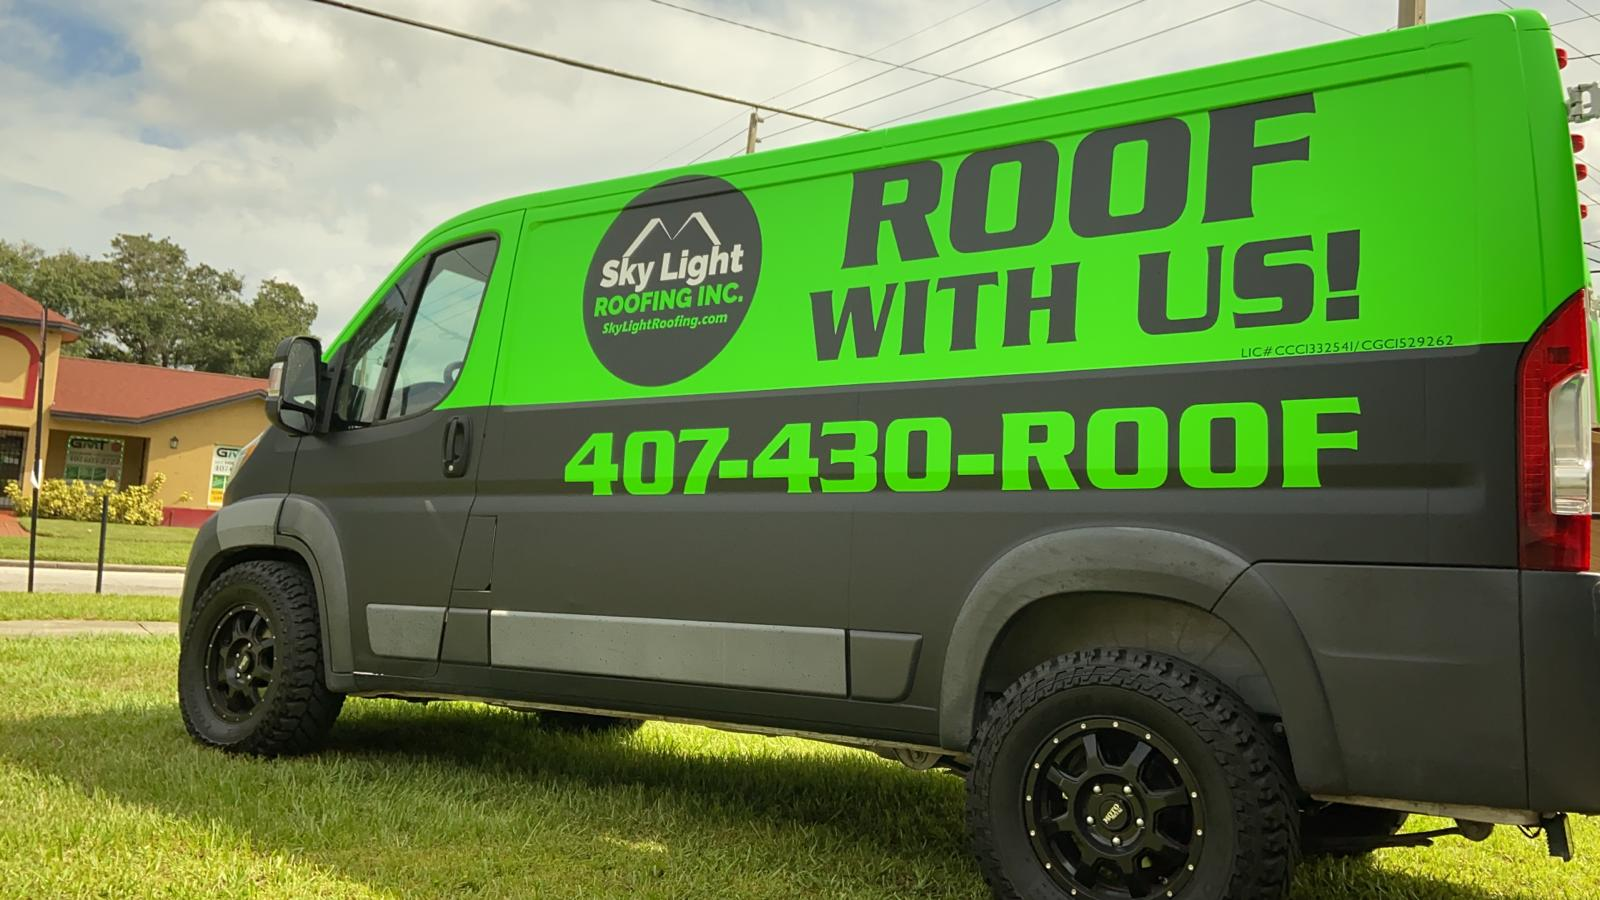 Residential Roofing Company Near Me